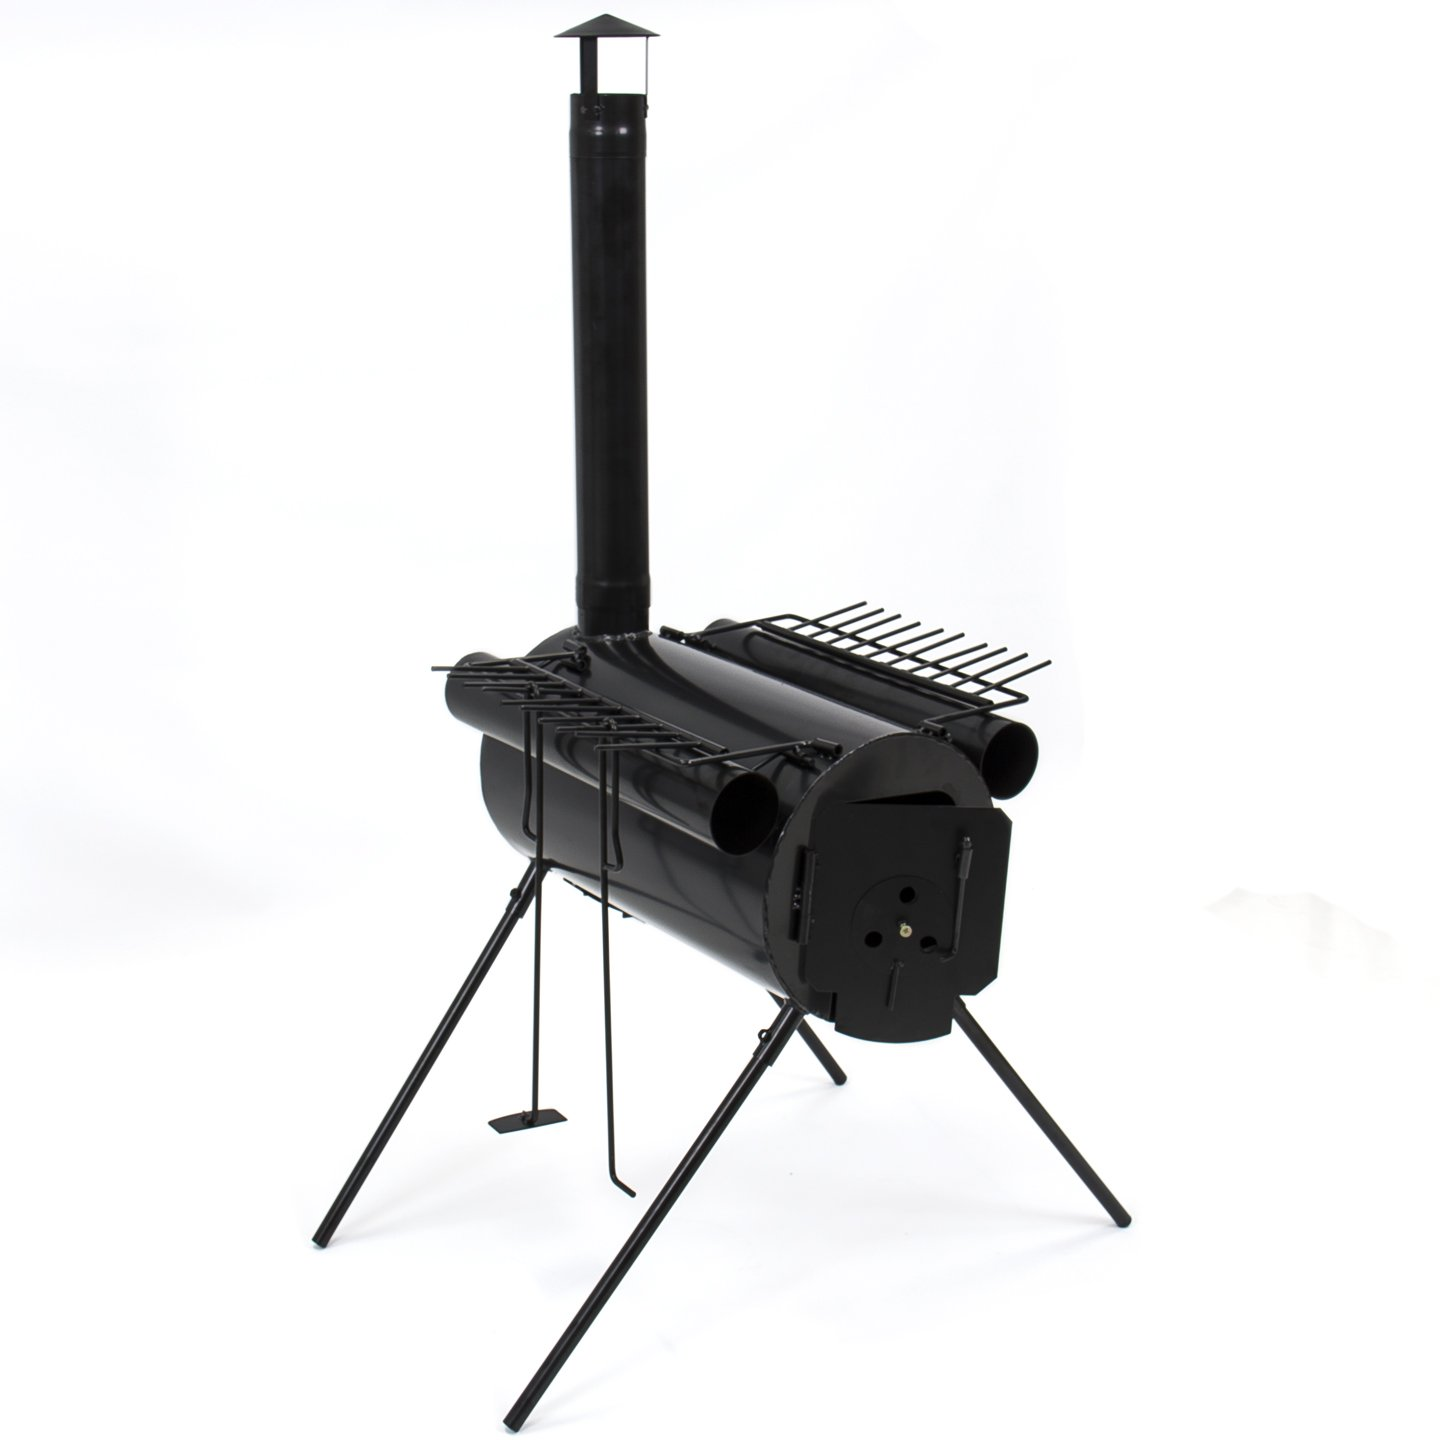 Steel Wood Heaters : Portable military camping steel wood stove tent heater